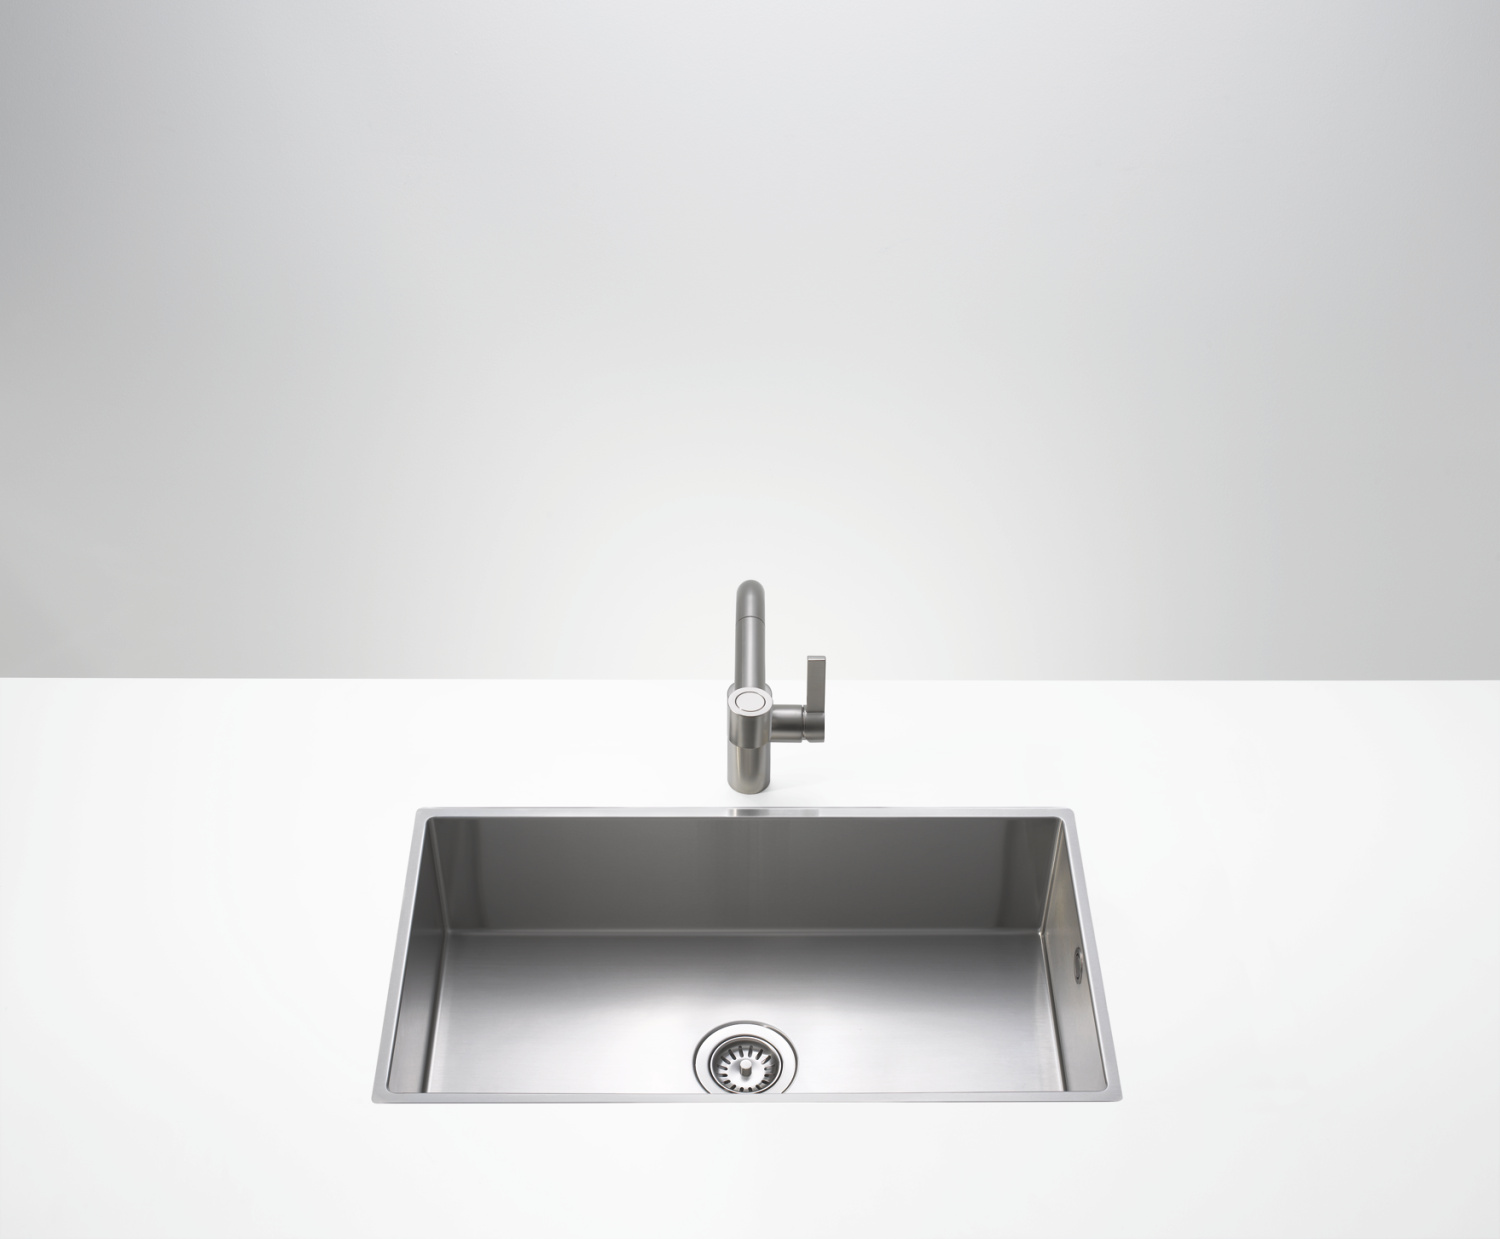 Single bowl sink - matte stainless steel - 38 101 000-86